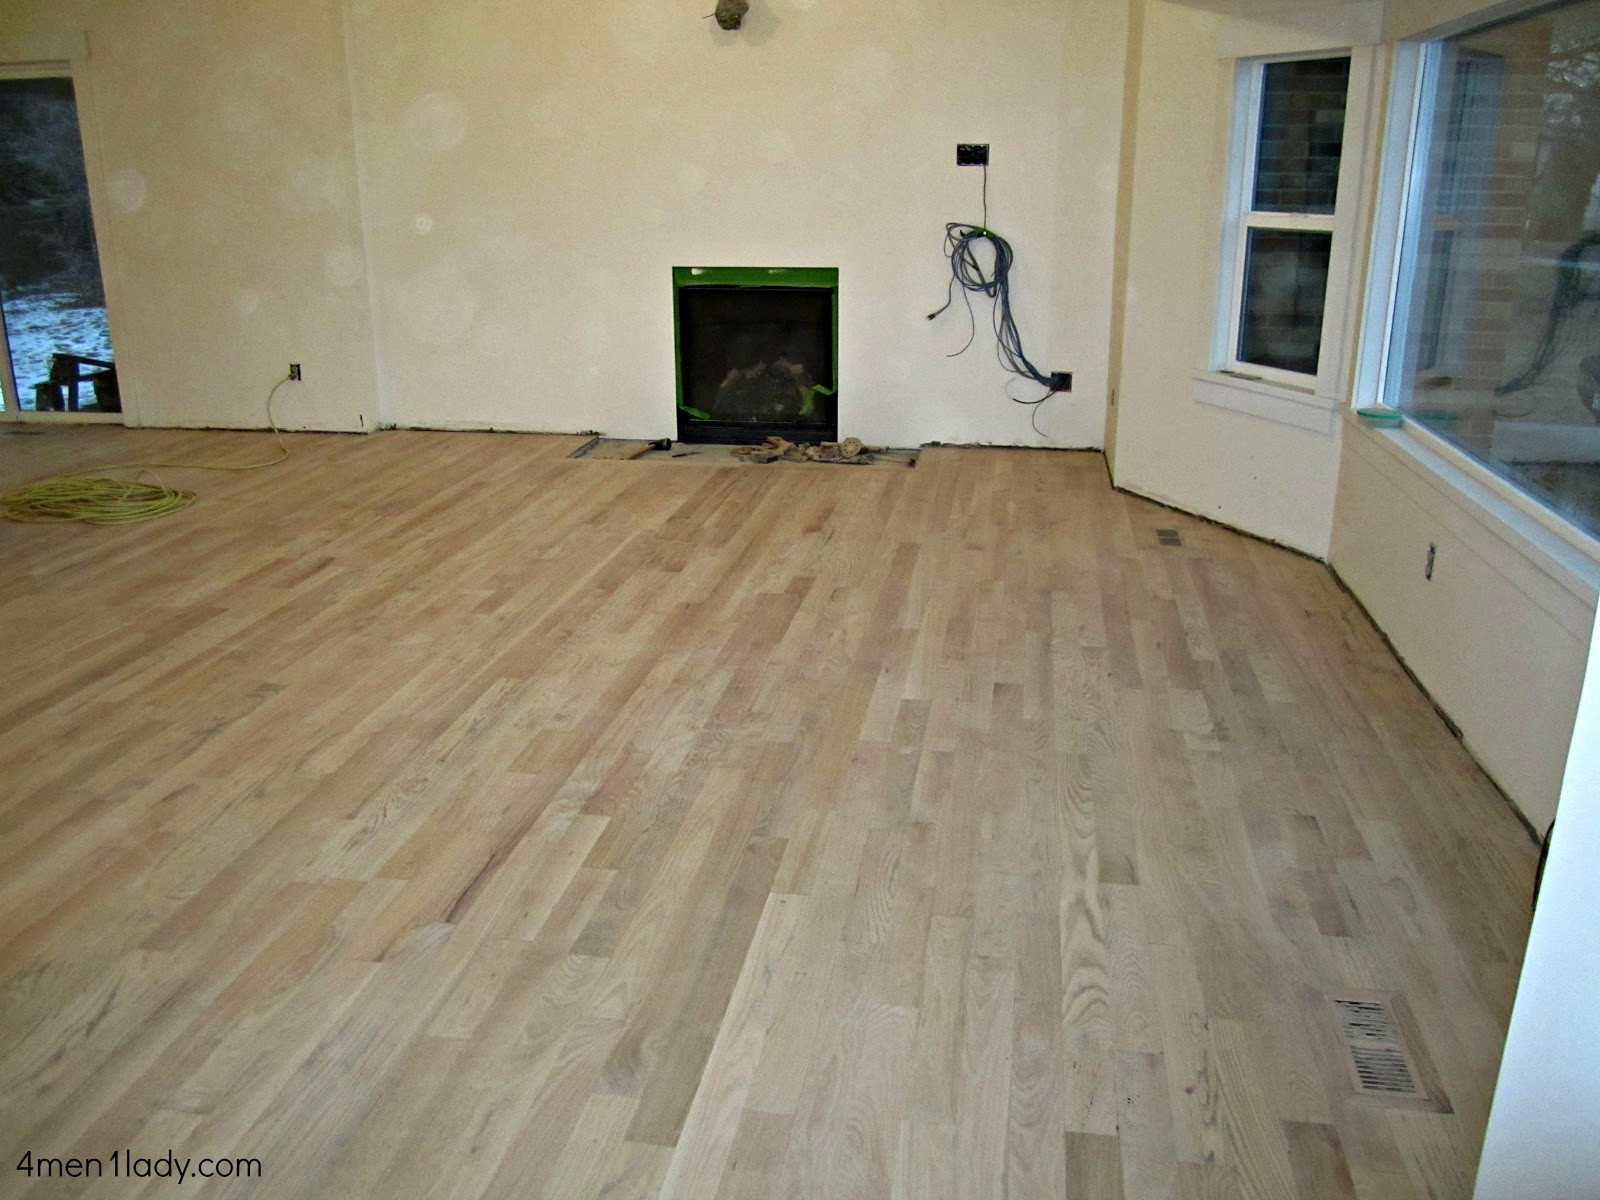 hickory engineered hardwood flooring pros and cons of engineered hardwood vs bamboo flooring ivoiregion throughout hardwood flooring pros and cons